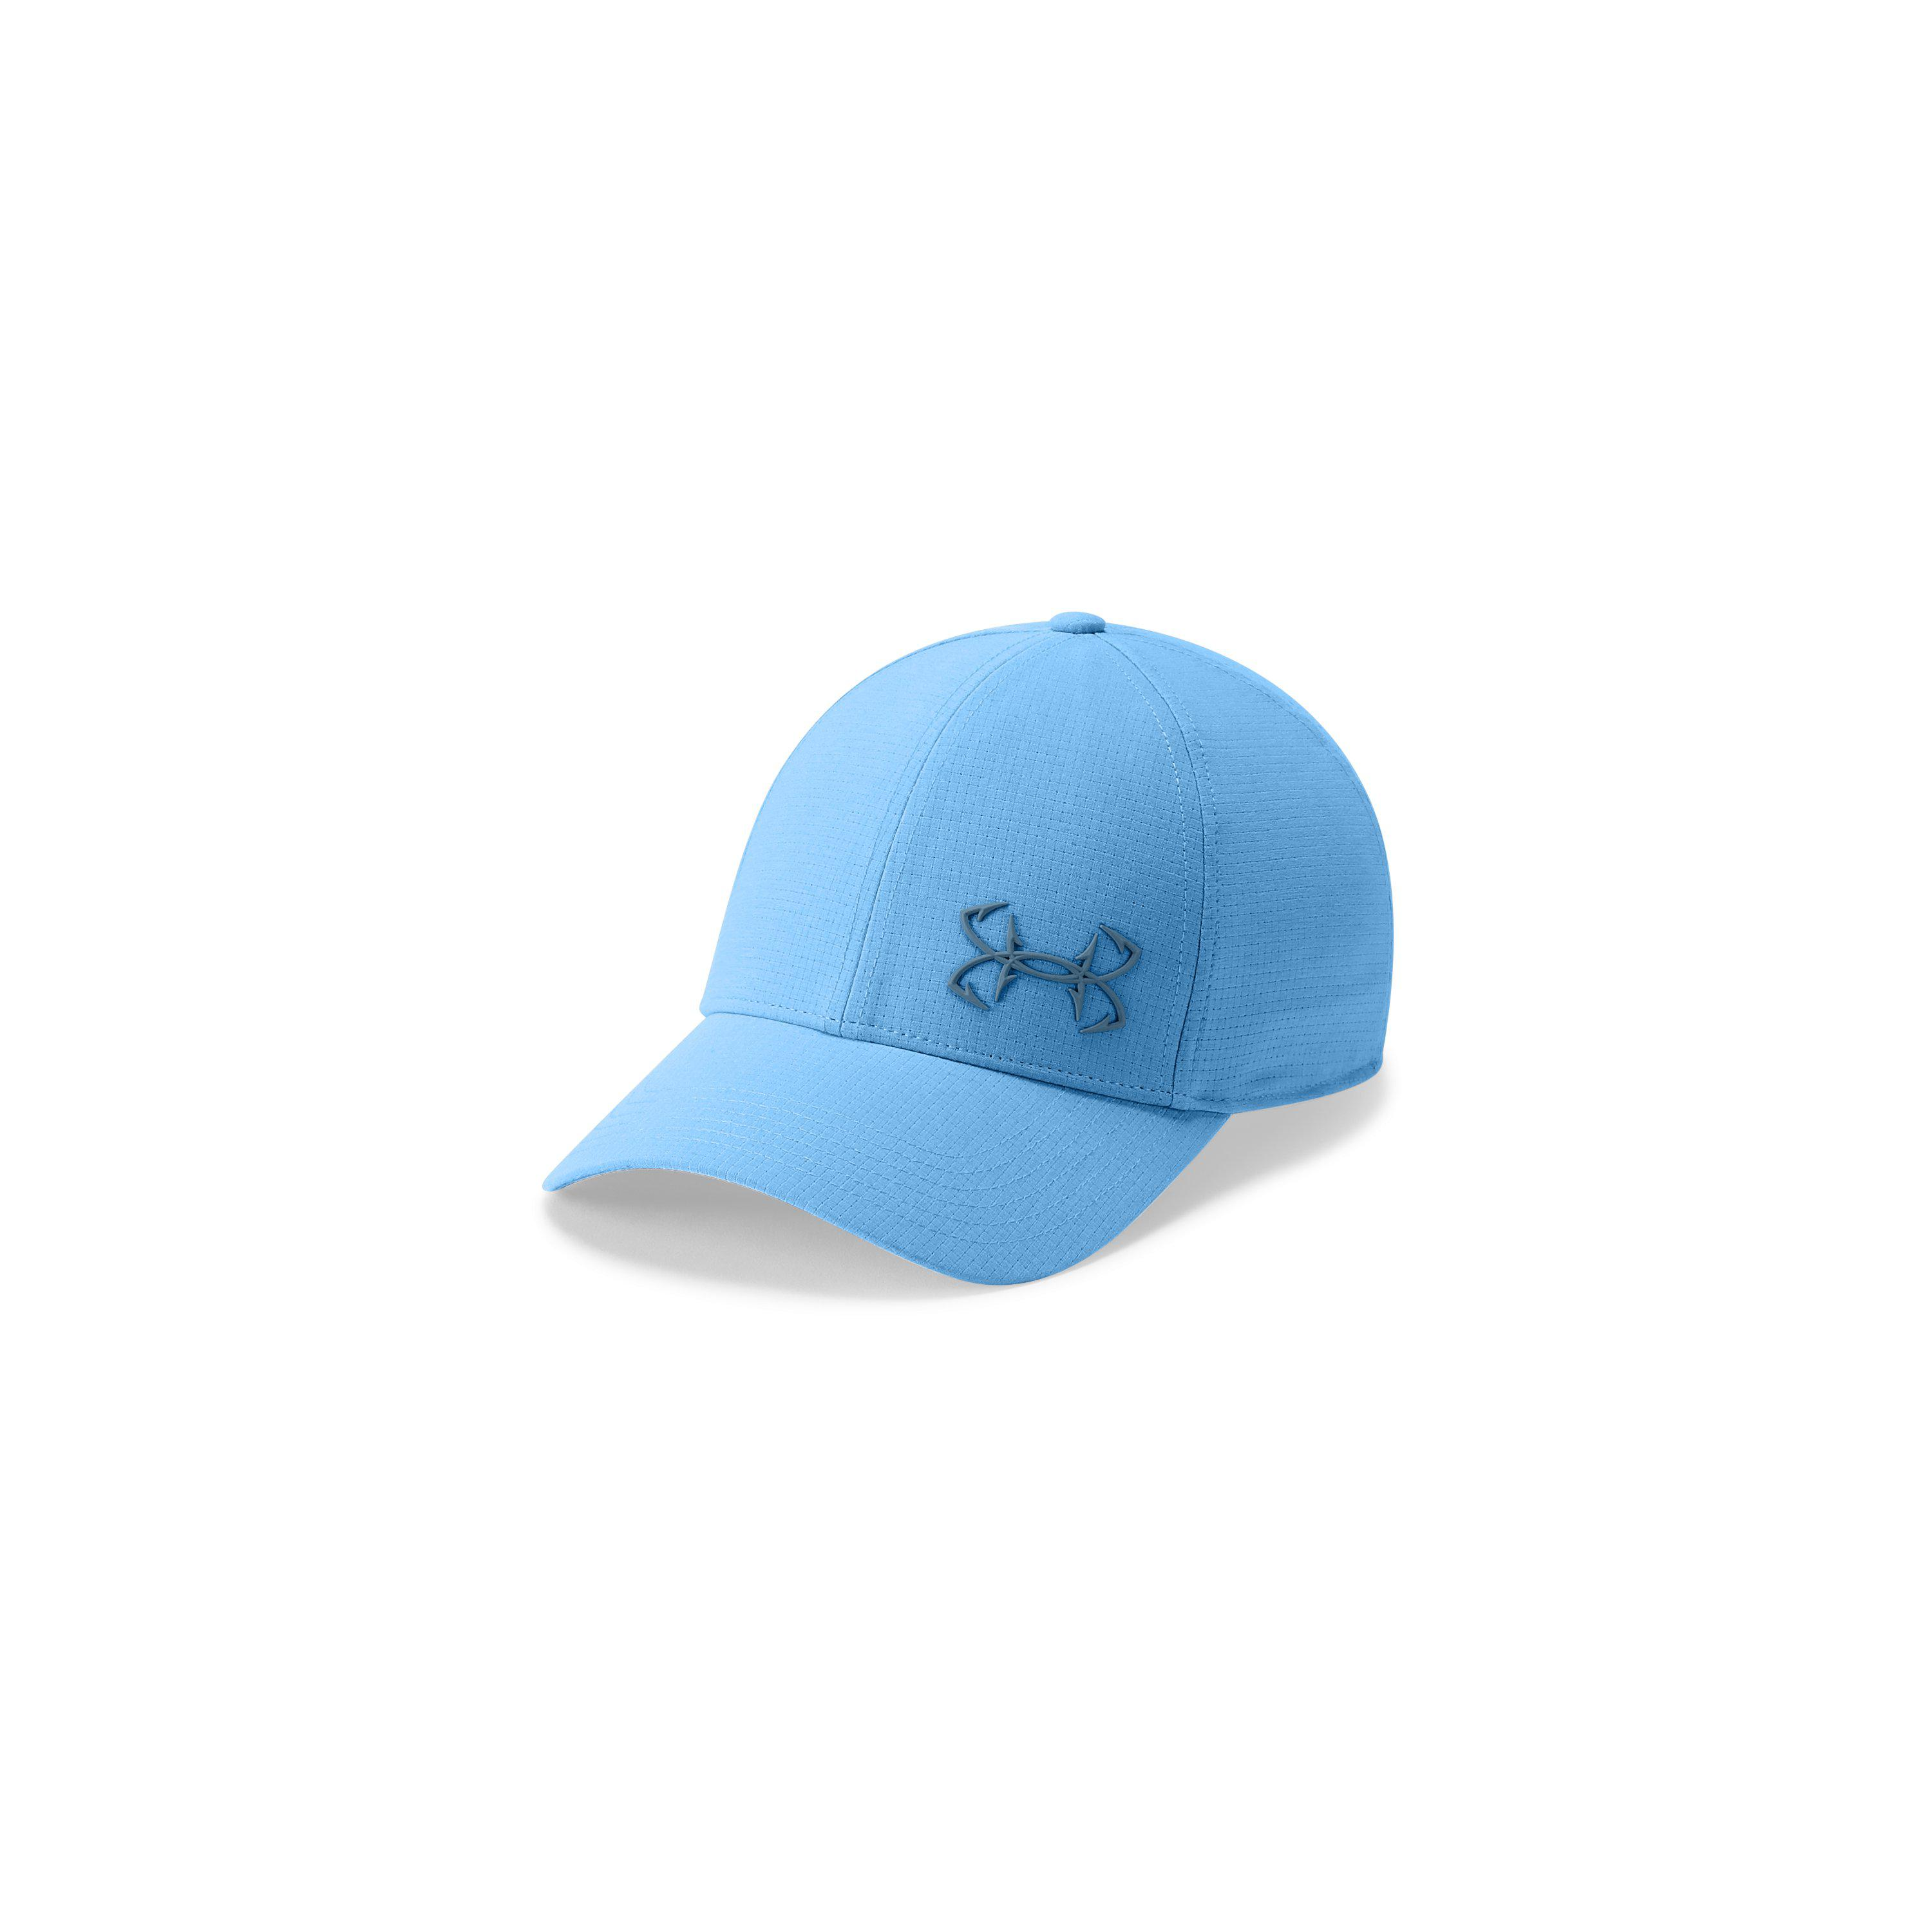 30ac12e3b03 Lyst - Under Armour Men s Ua Fish Coolswitch Armourventtm Cap in ...